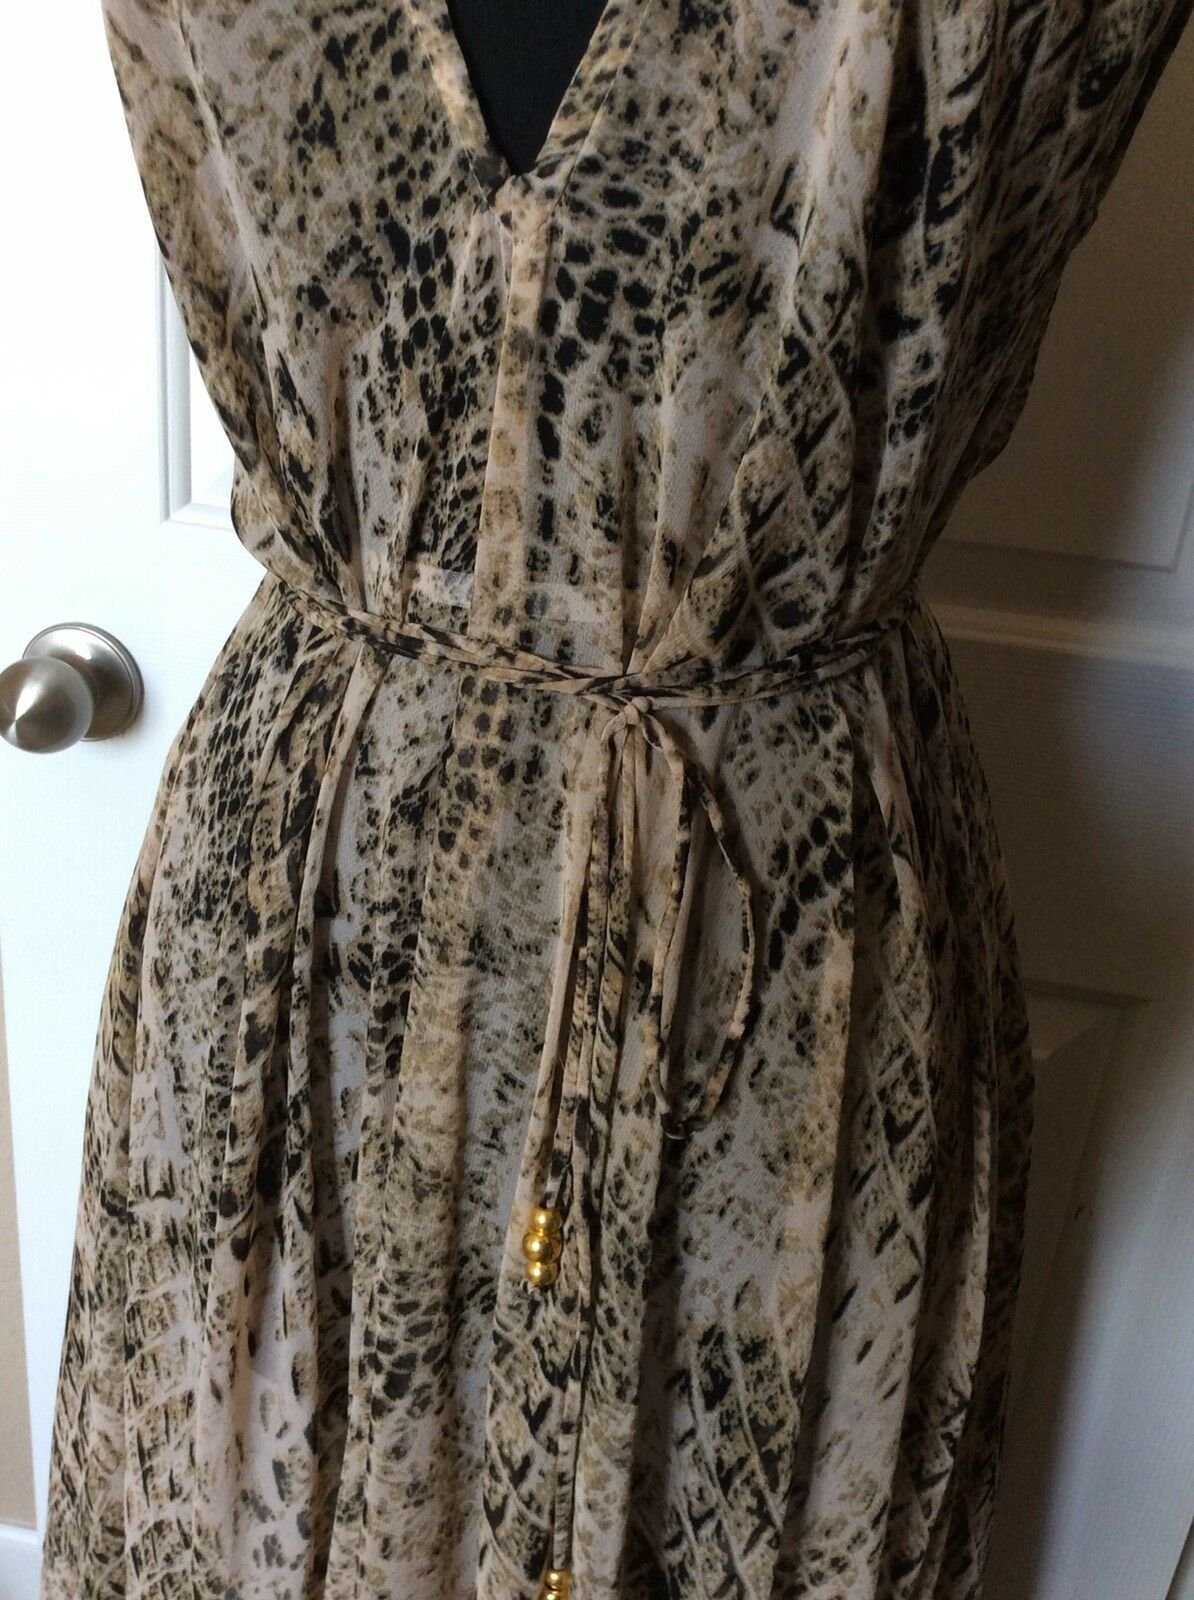 SHEER SUNDRESS ONE ONE ONE SIZE FITS ALL 06c31c